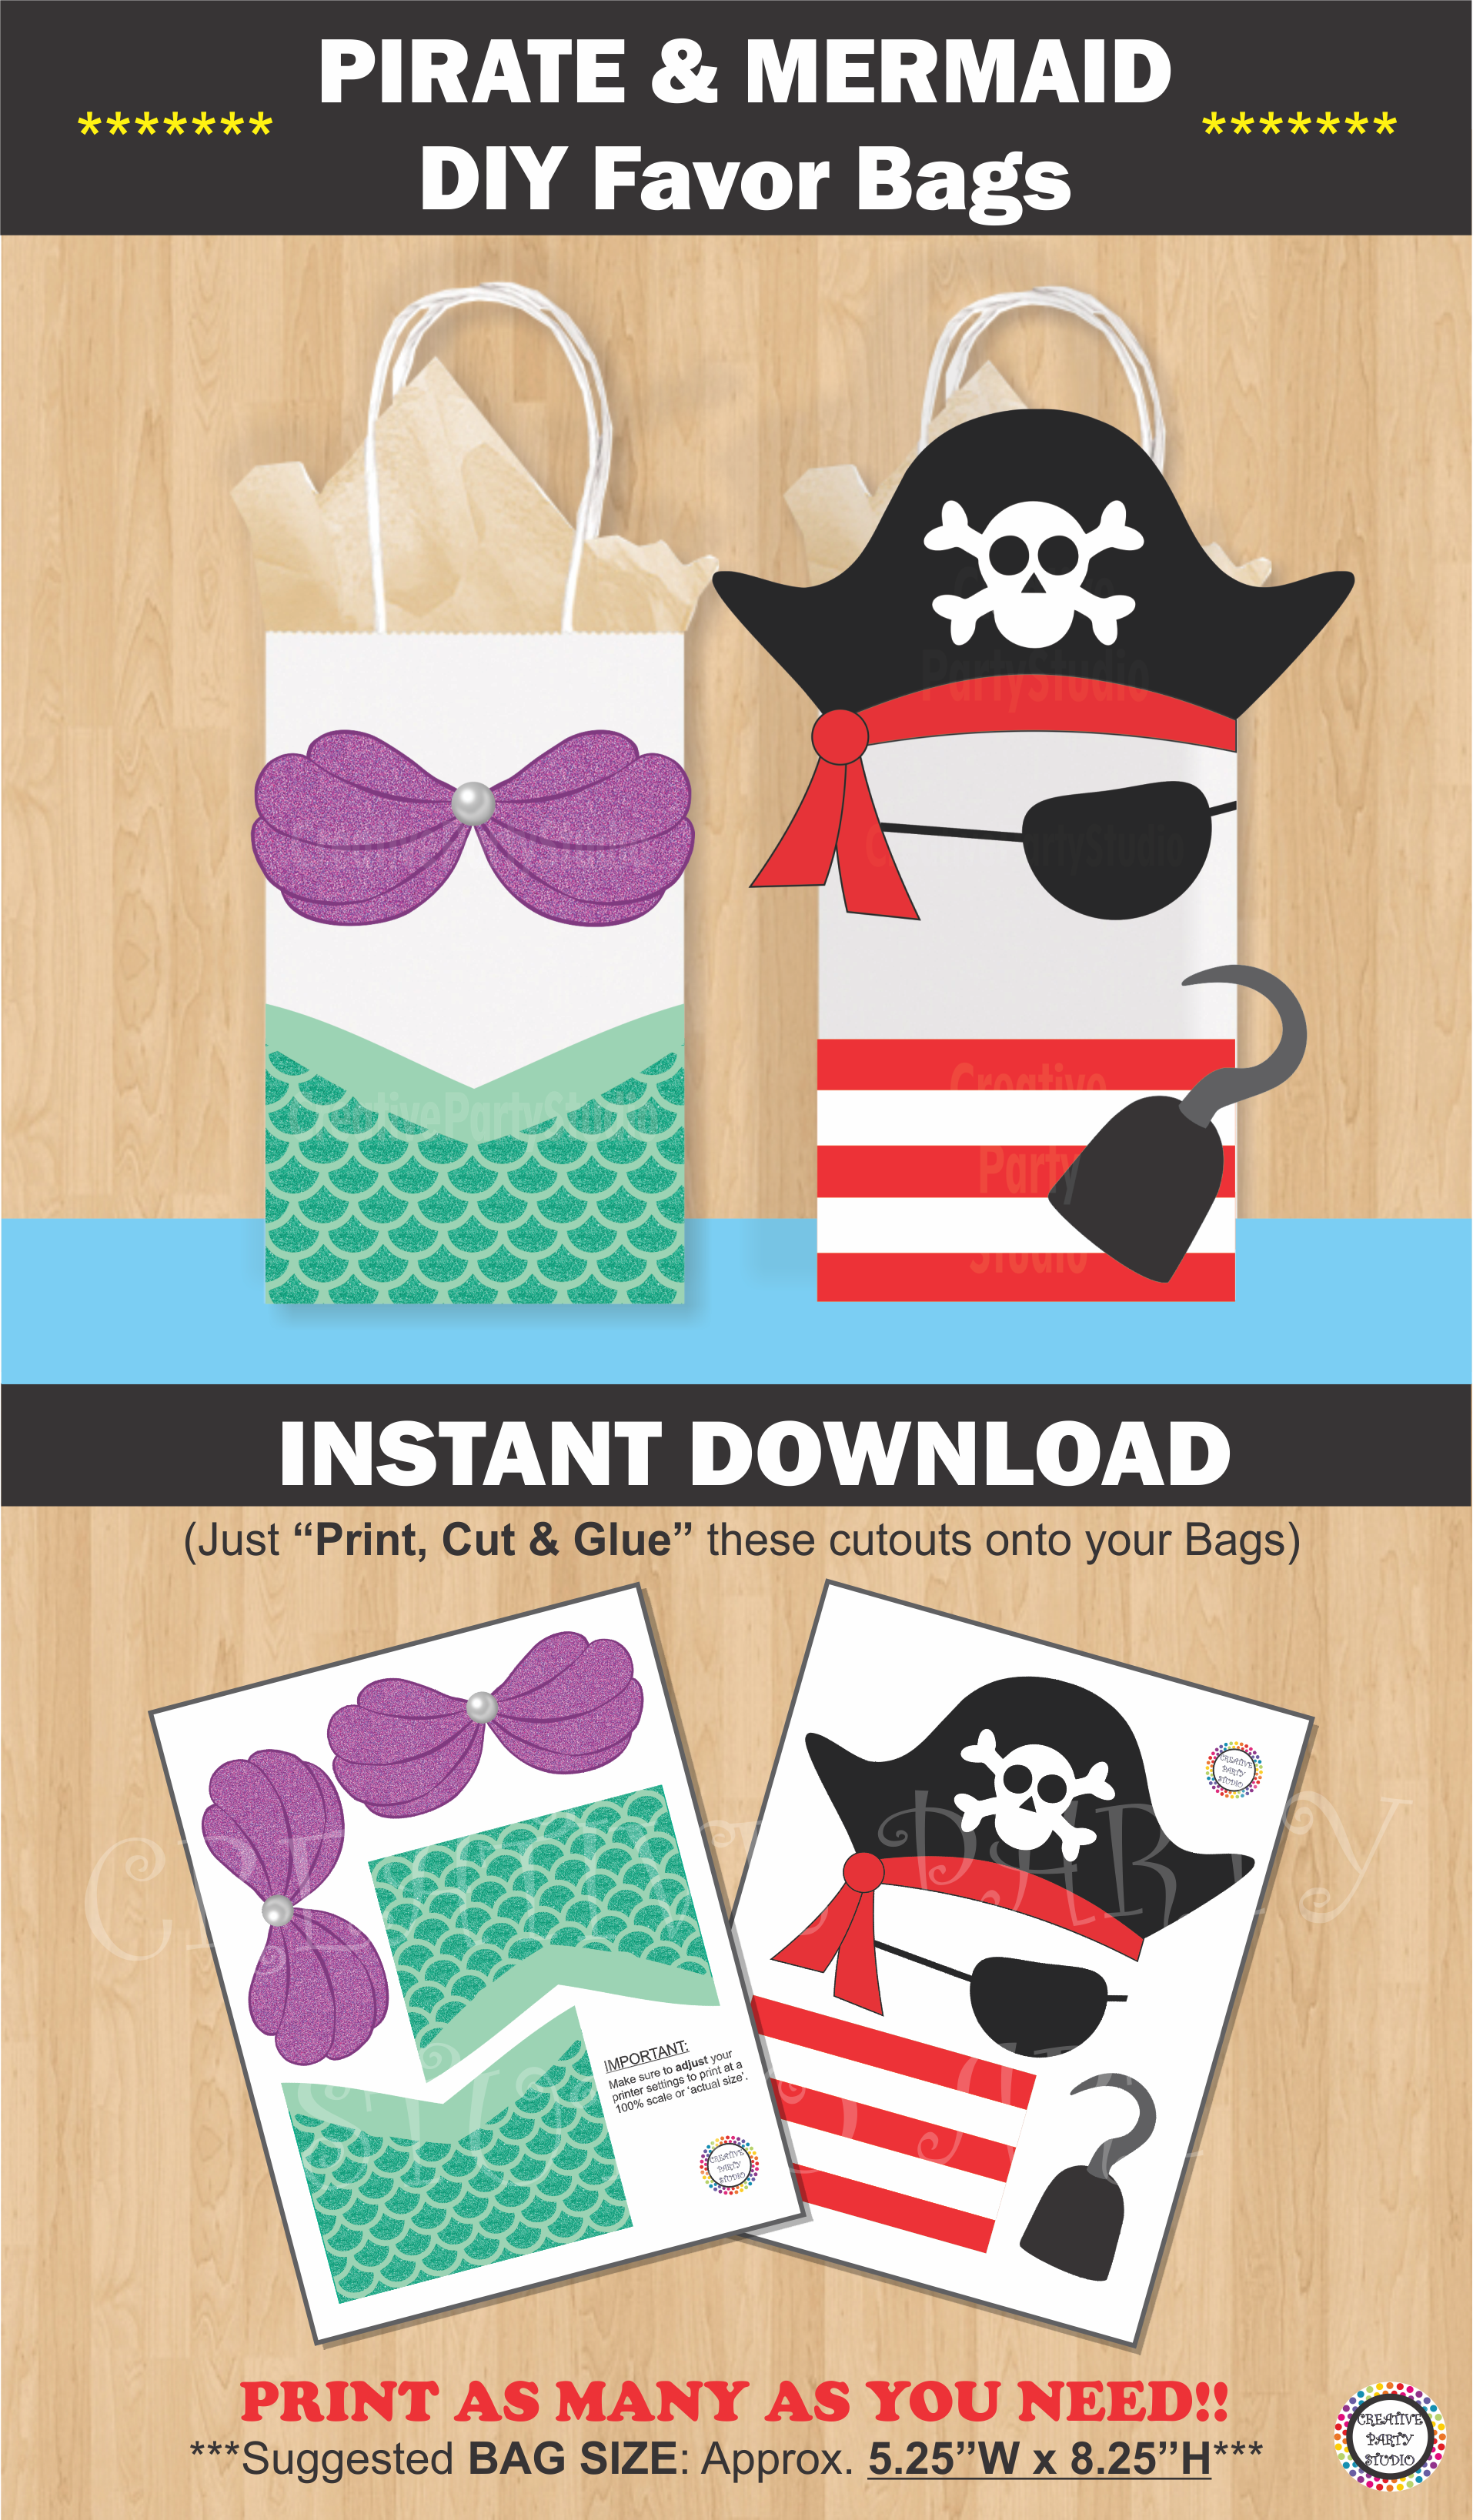 Mermaid Gift Ideas Mermaid Favor Bags Pirate Favor Bags Mermaid And Pirate